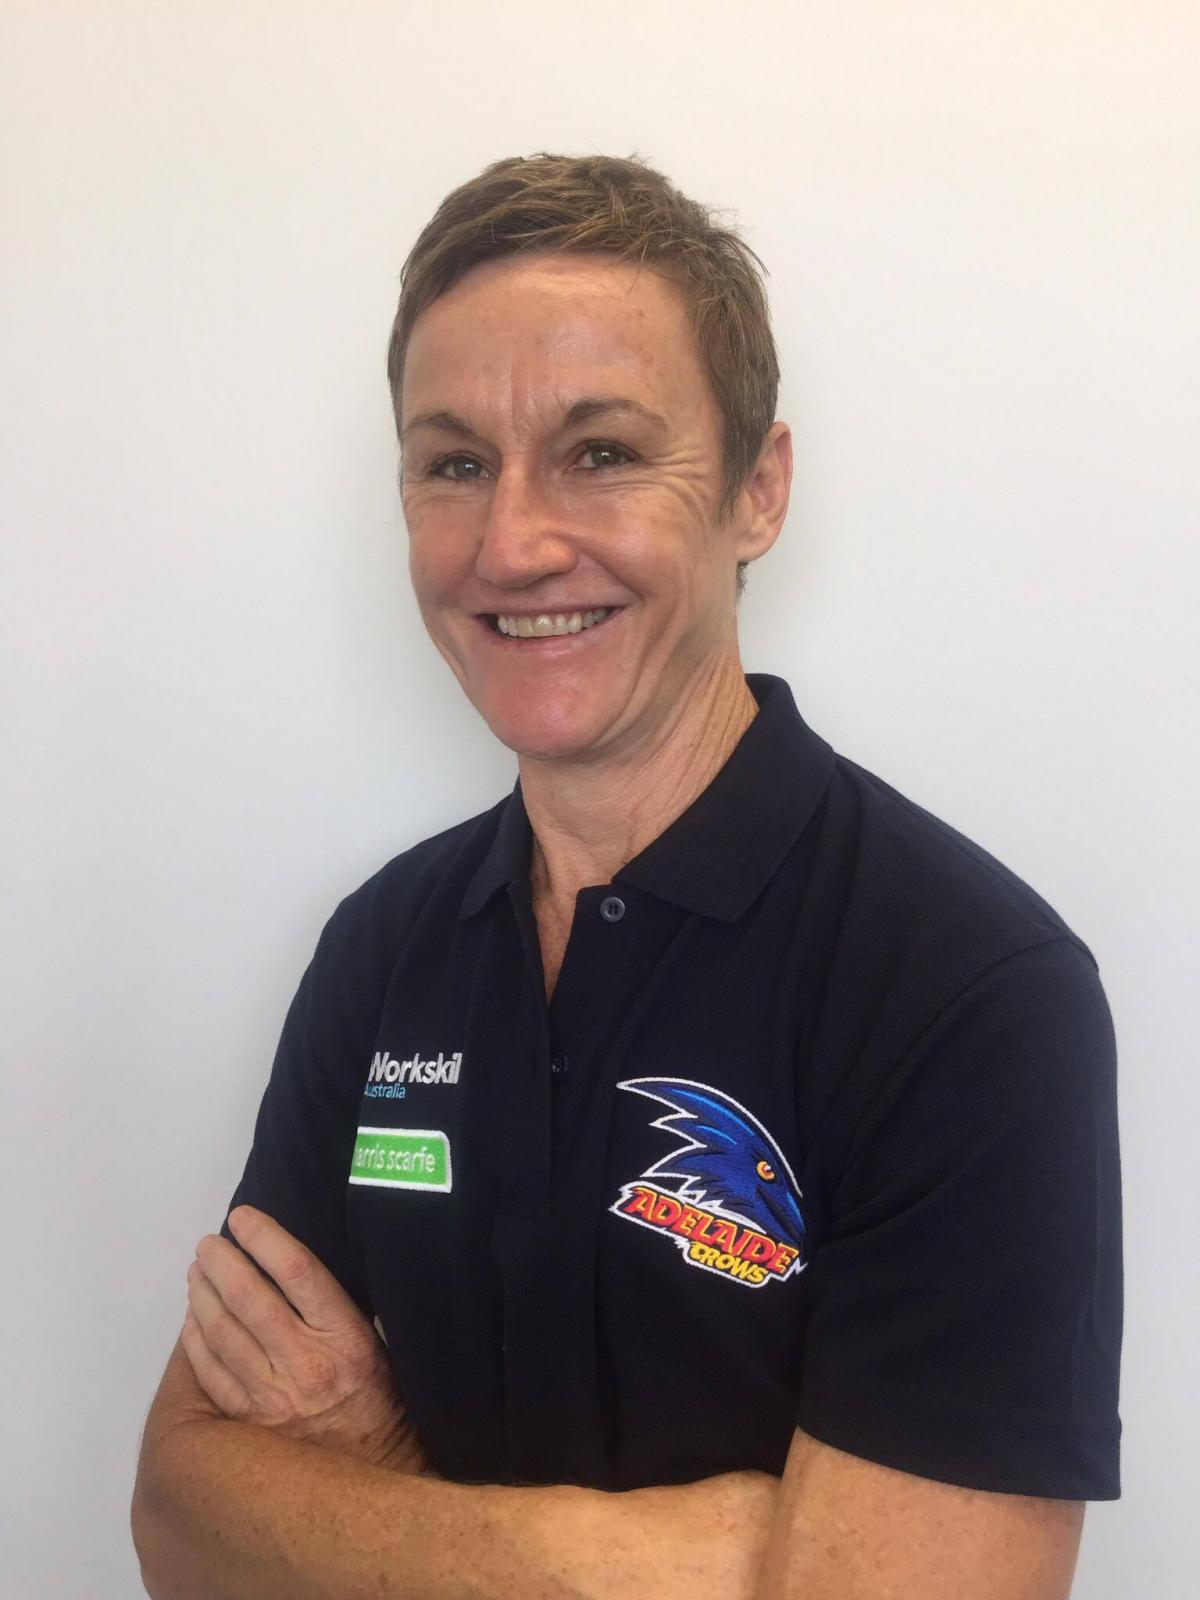 GWYNNE TO FILL ADELAIDE CROWS' ASSISTANT ROLE